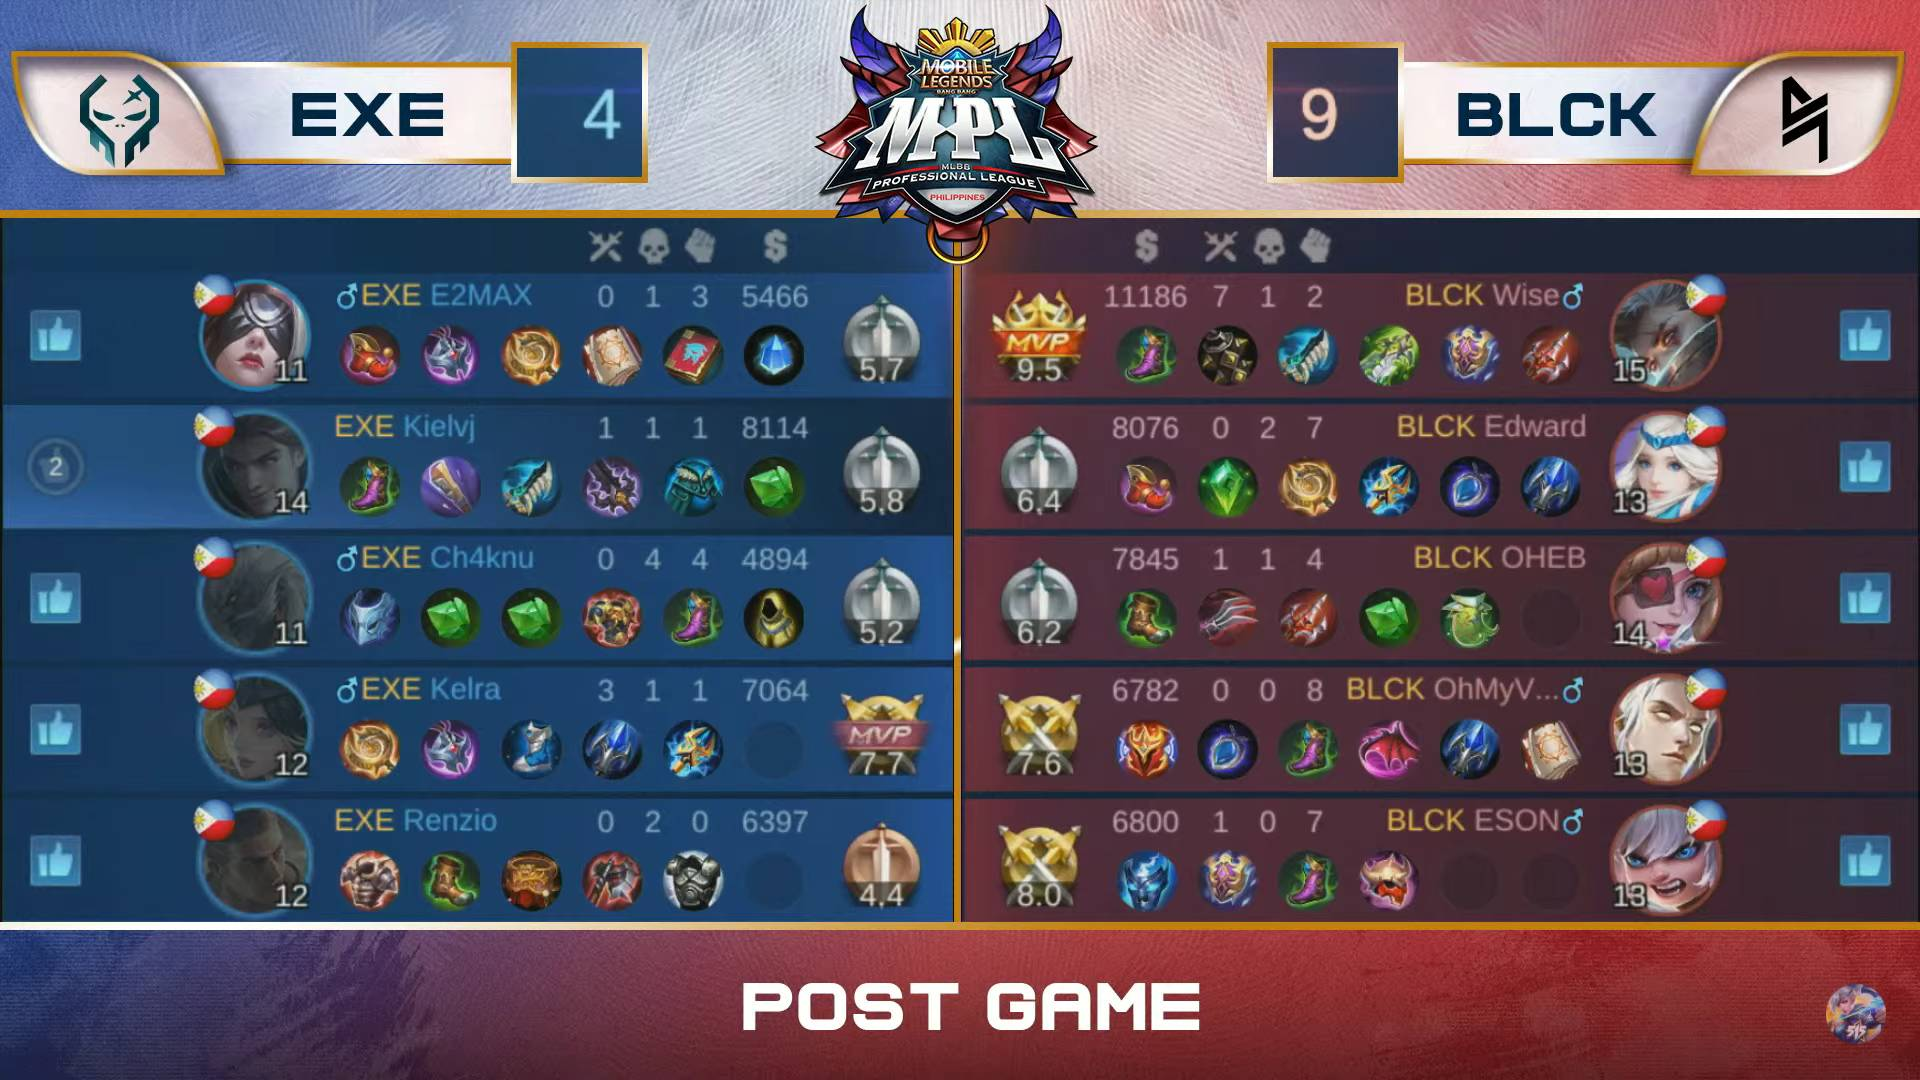 MPL-PH-Season-7-Blacklist-def-Execration-Game-3 Wise wipes out Execration in decider as Blacklist bounces back in MPL PH ESports Mobile Legends MPL-PH News  - philippine sports news